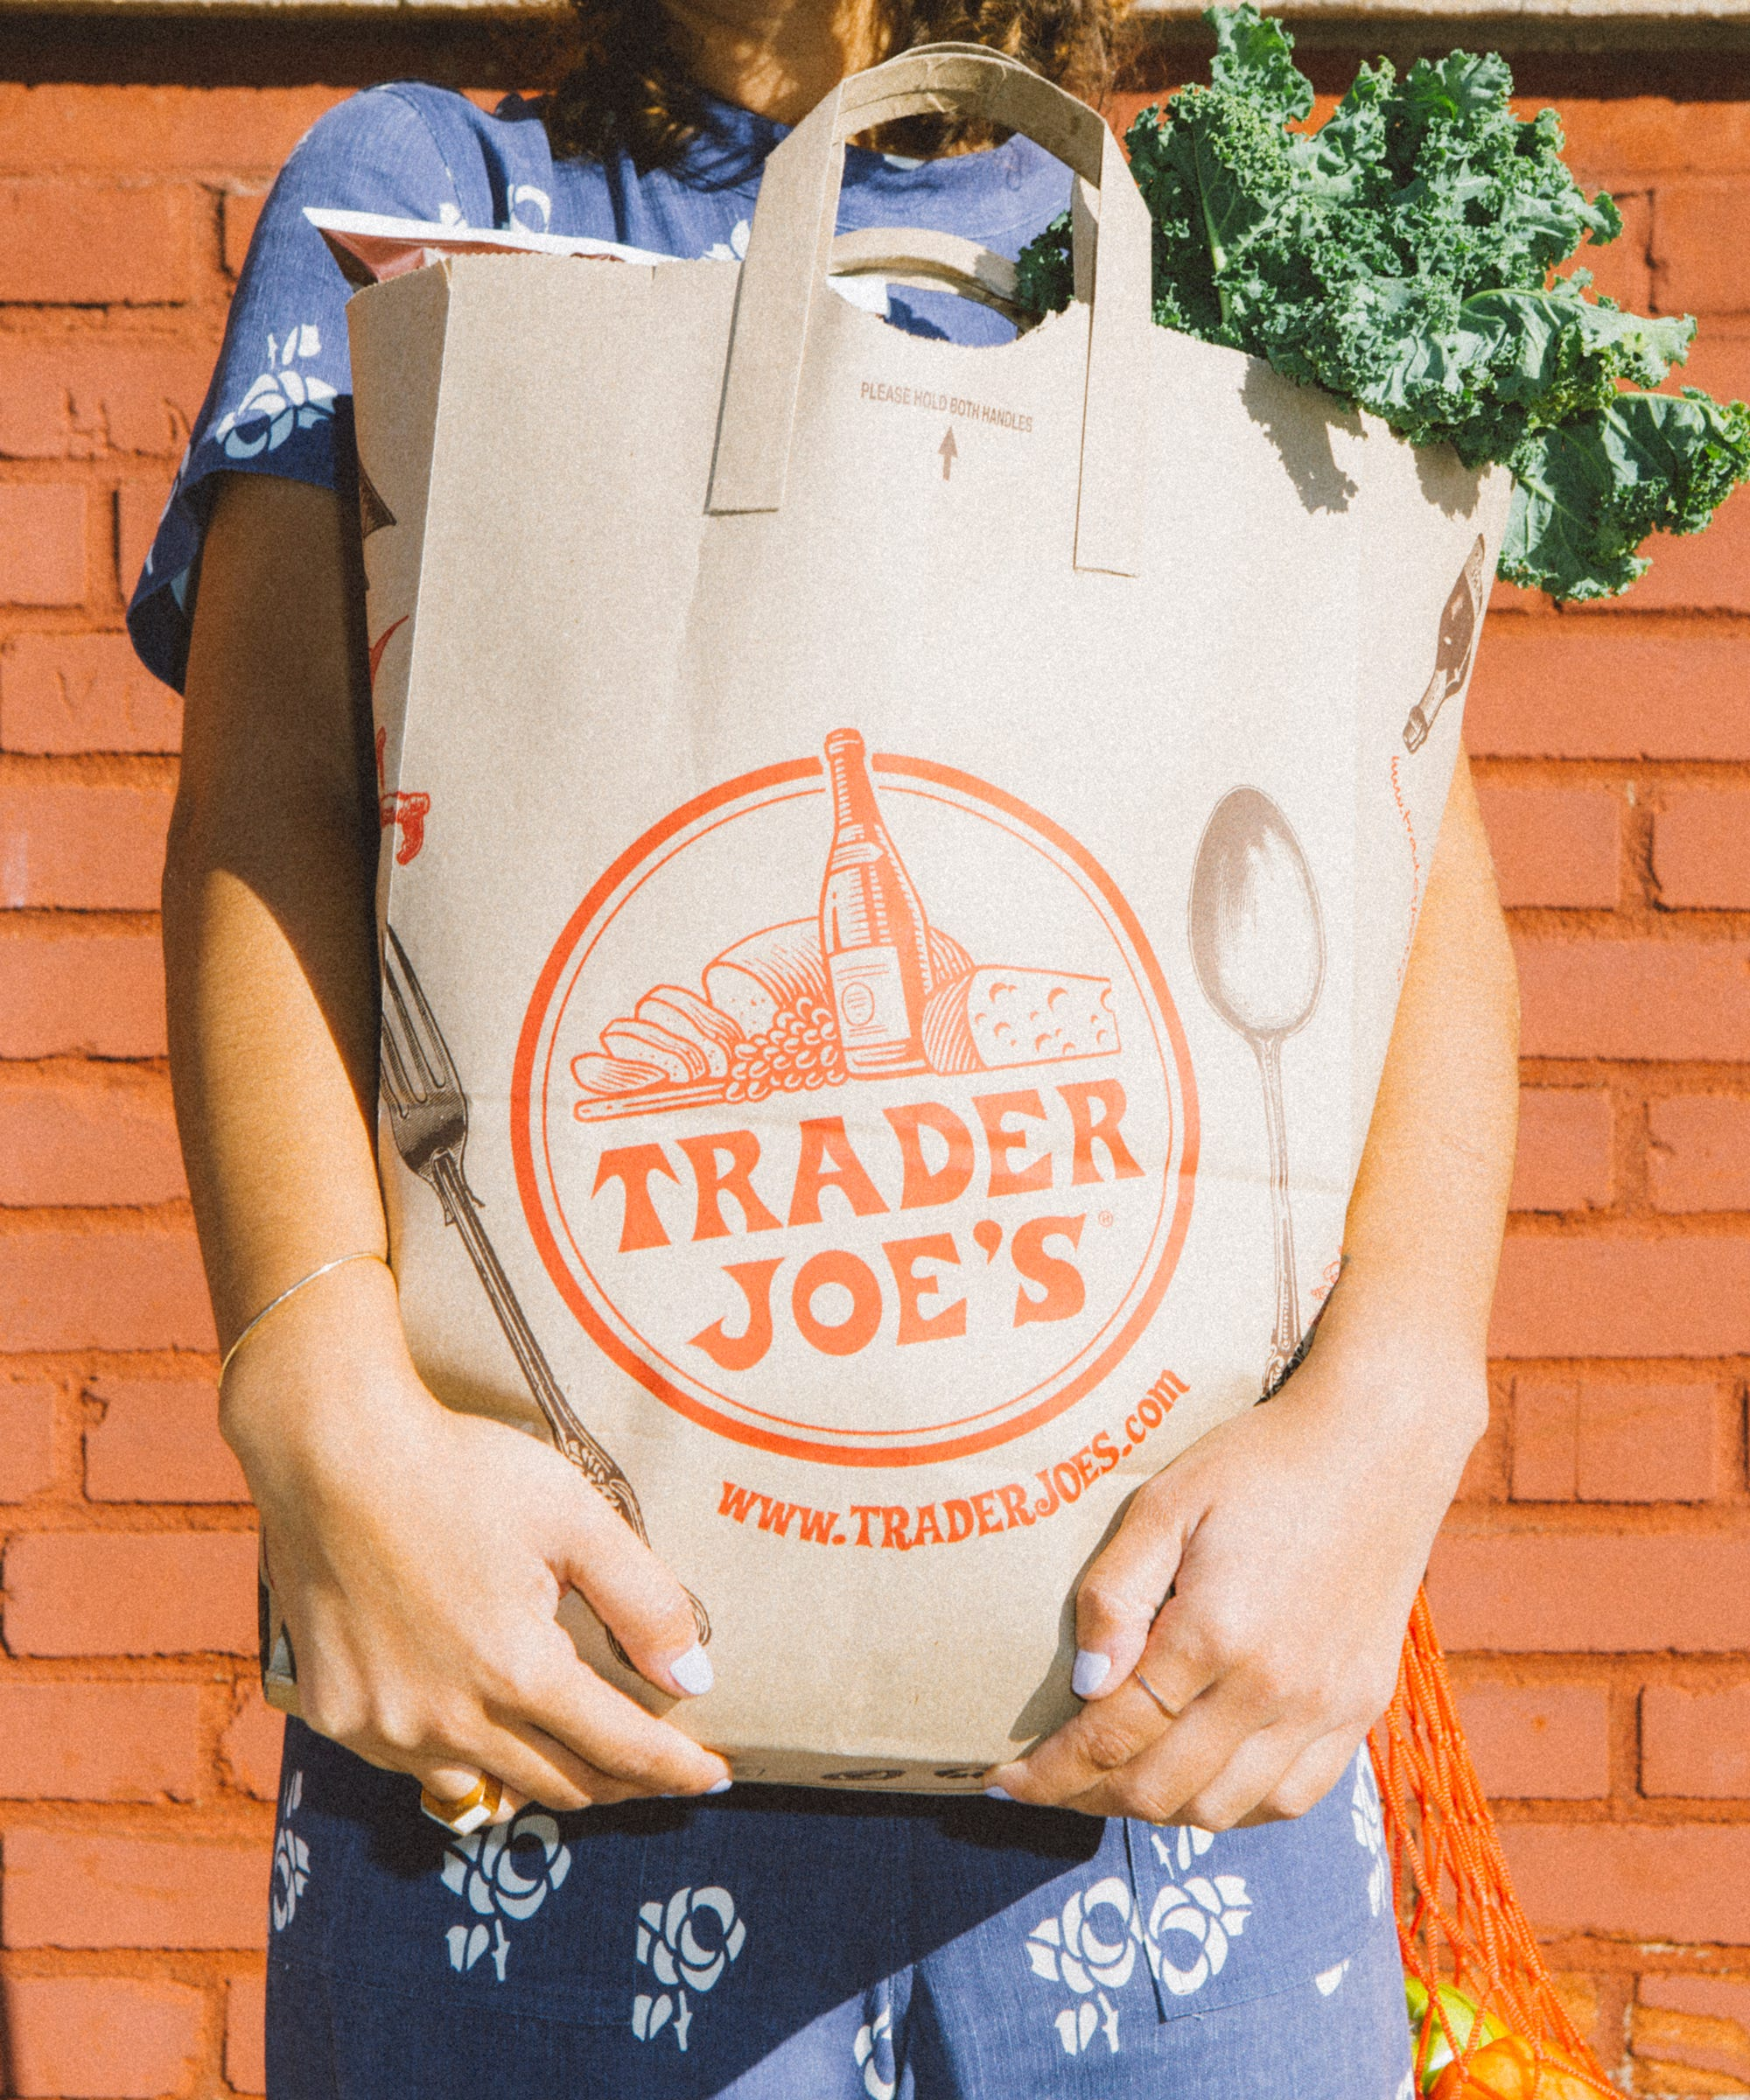 How To Throw A 4th Of July Cookout With $40 Worth Of Trader Joe's Food